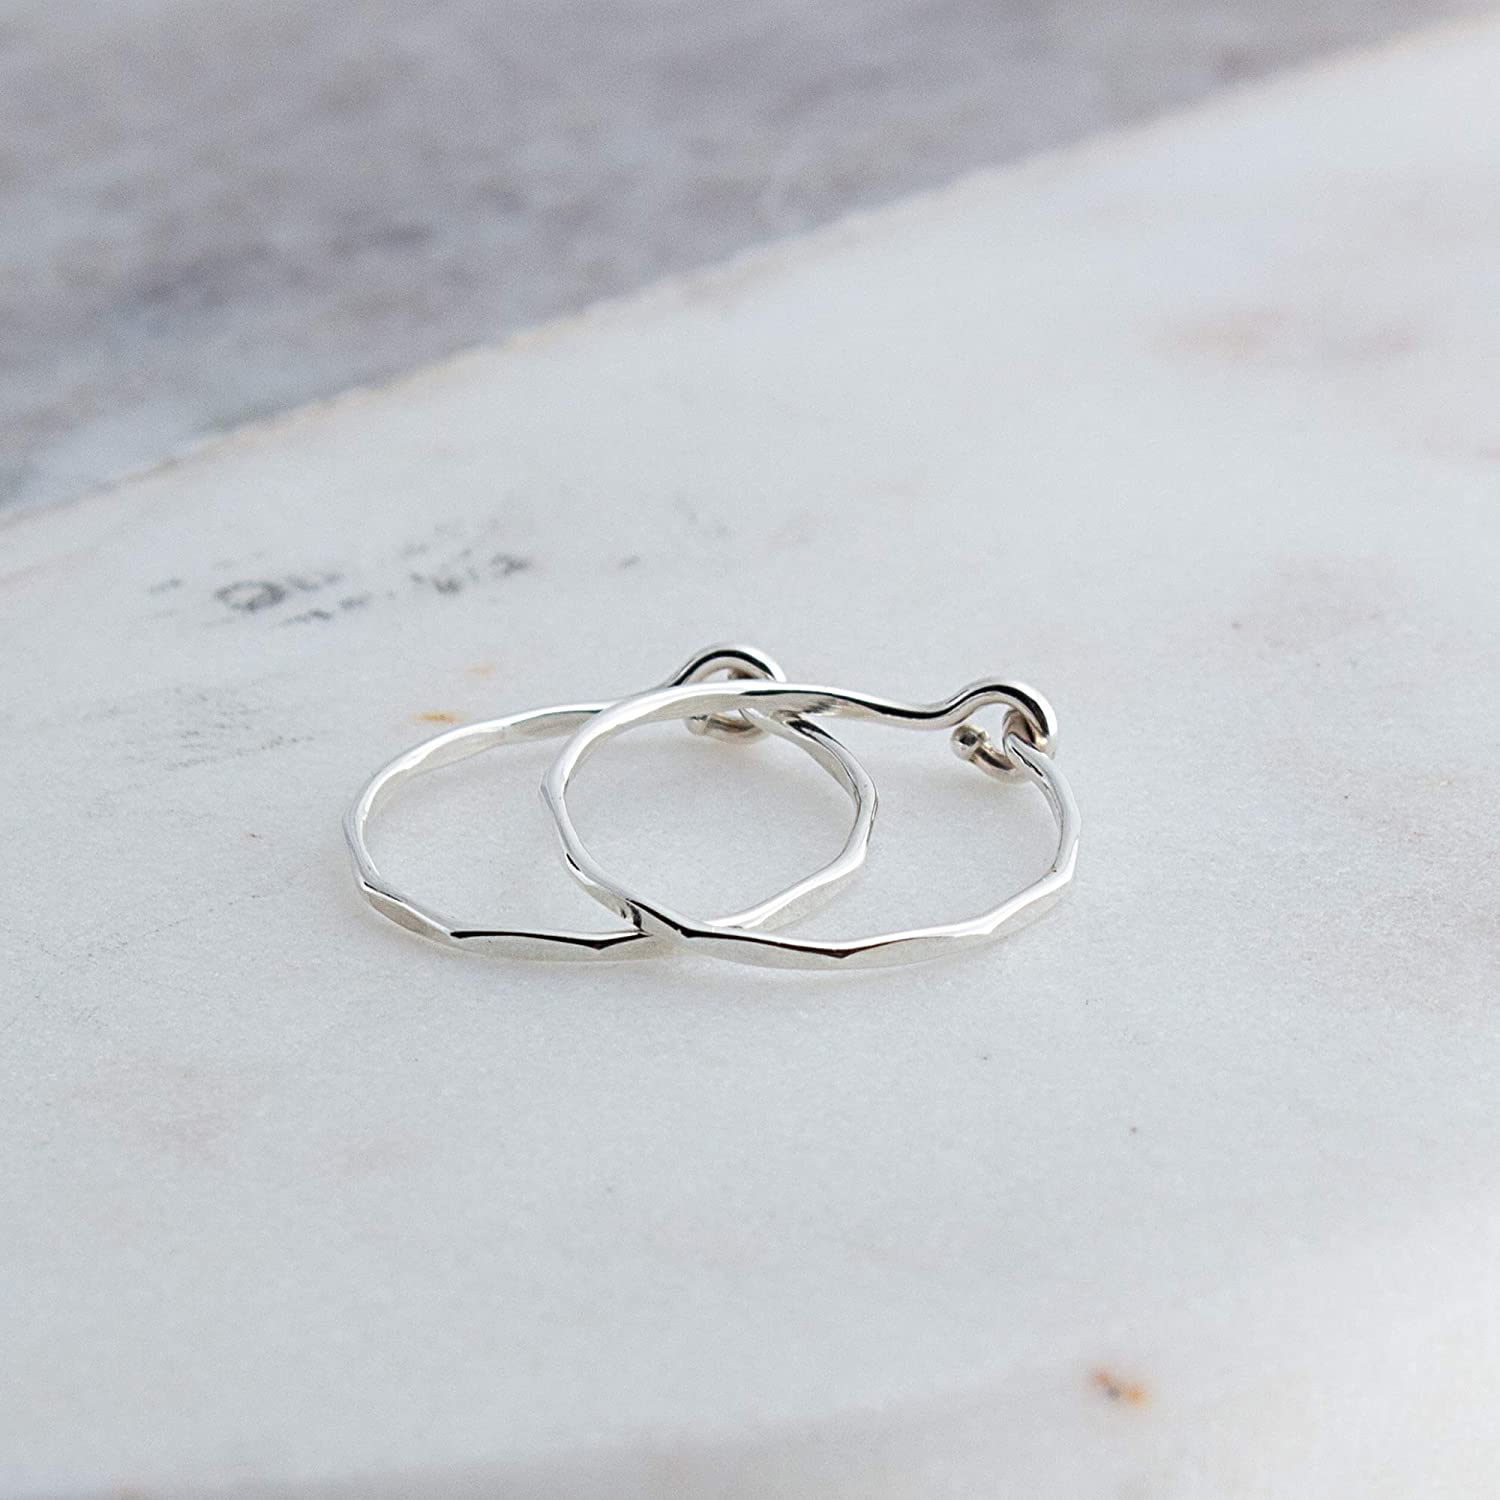 Extra Thin Faceted Sterling Silver Hoop Earrings Cartilage Tragus Handmade Hammered